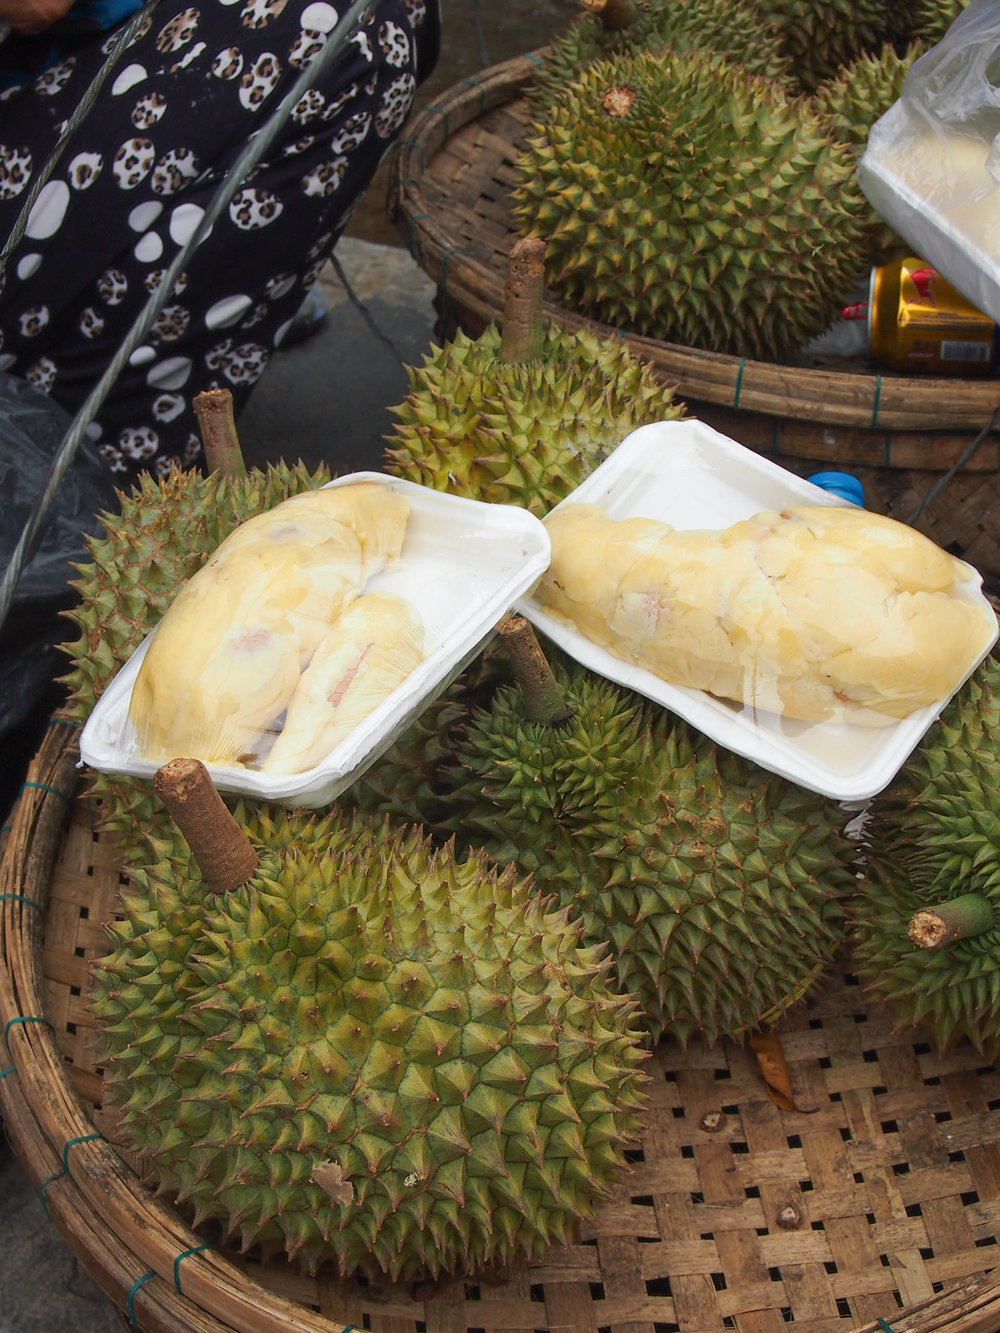 Durian. It even looks disgusting. Like a weird organ or some sea creature.